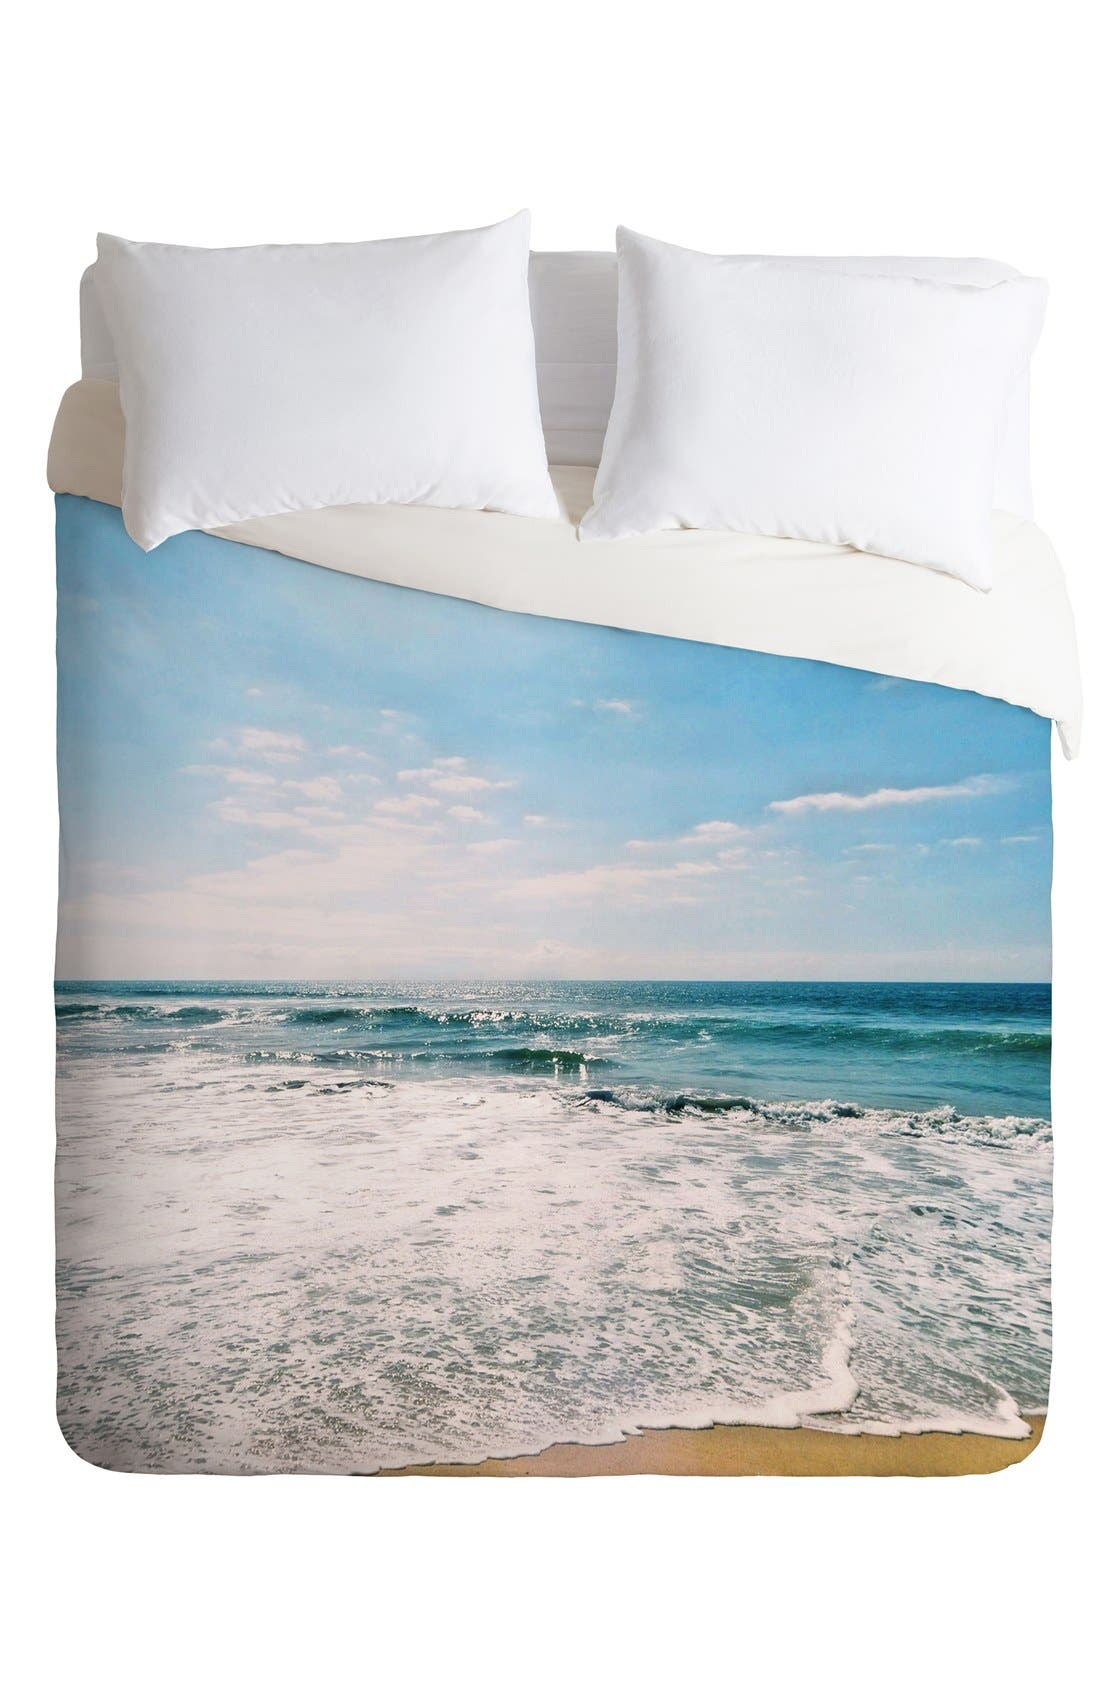 Take Me There Duvet Cover & Sham Set,                             Alternate thumbnail 2, color,                             400